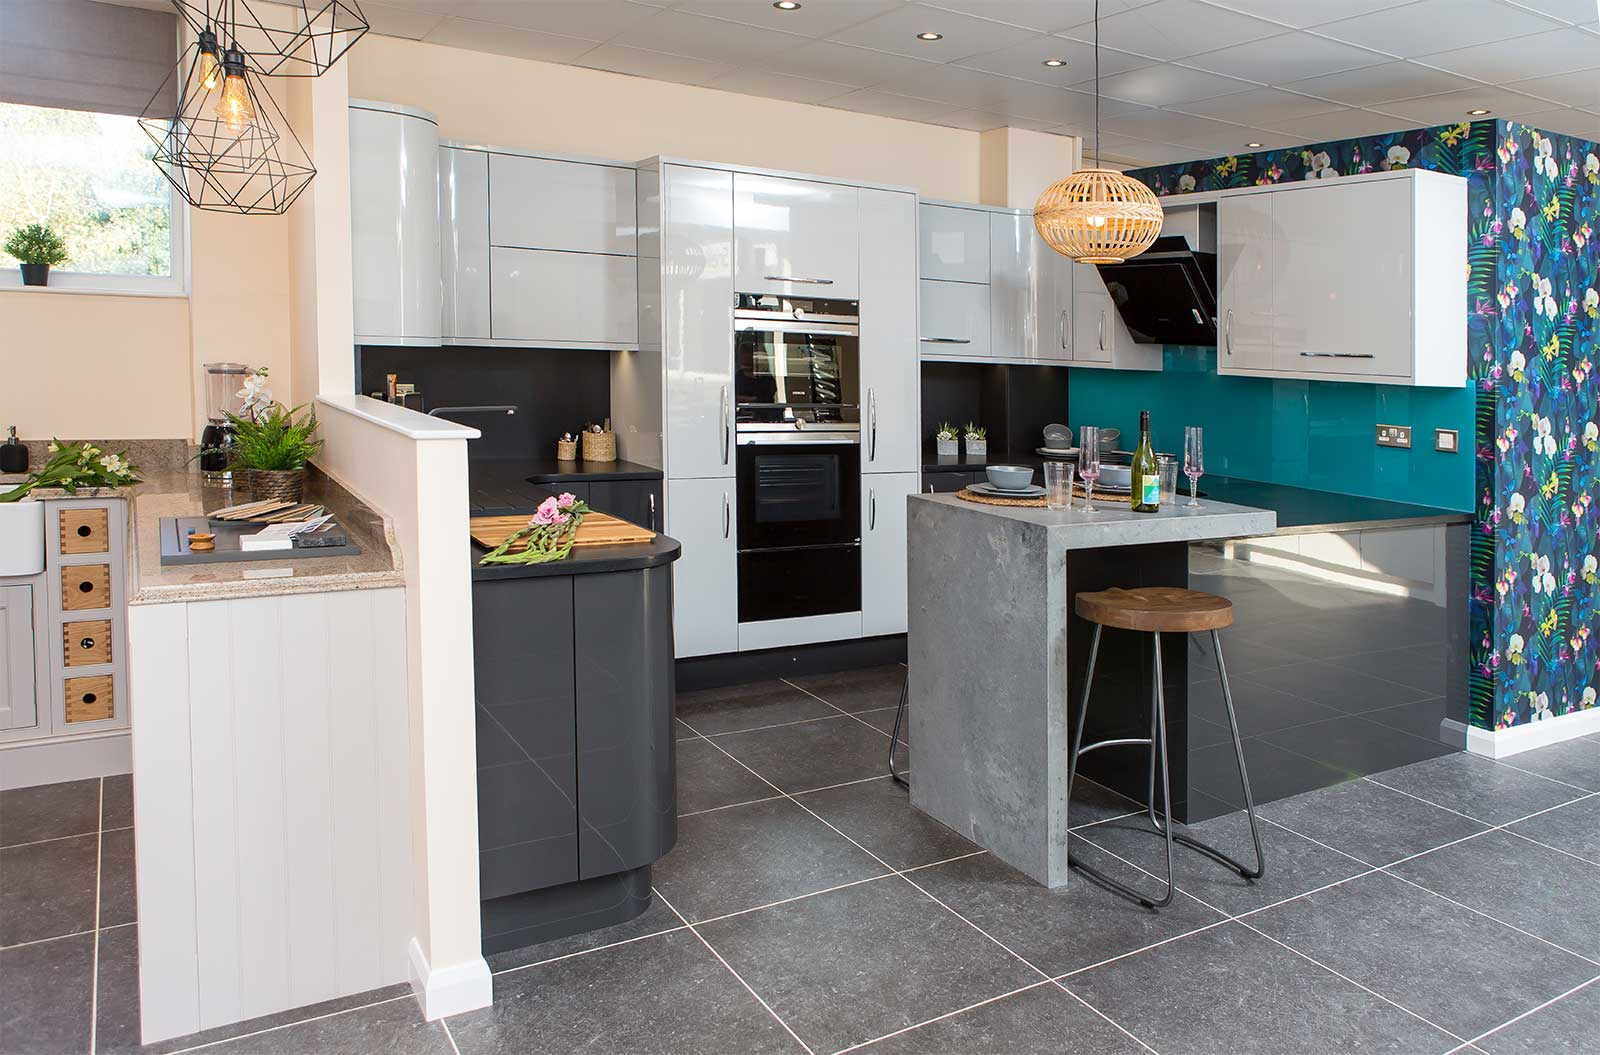 Why us - Snellings Kitchens: Bespoke Kitchens, Norwich